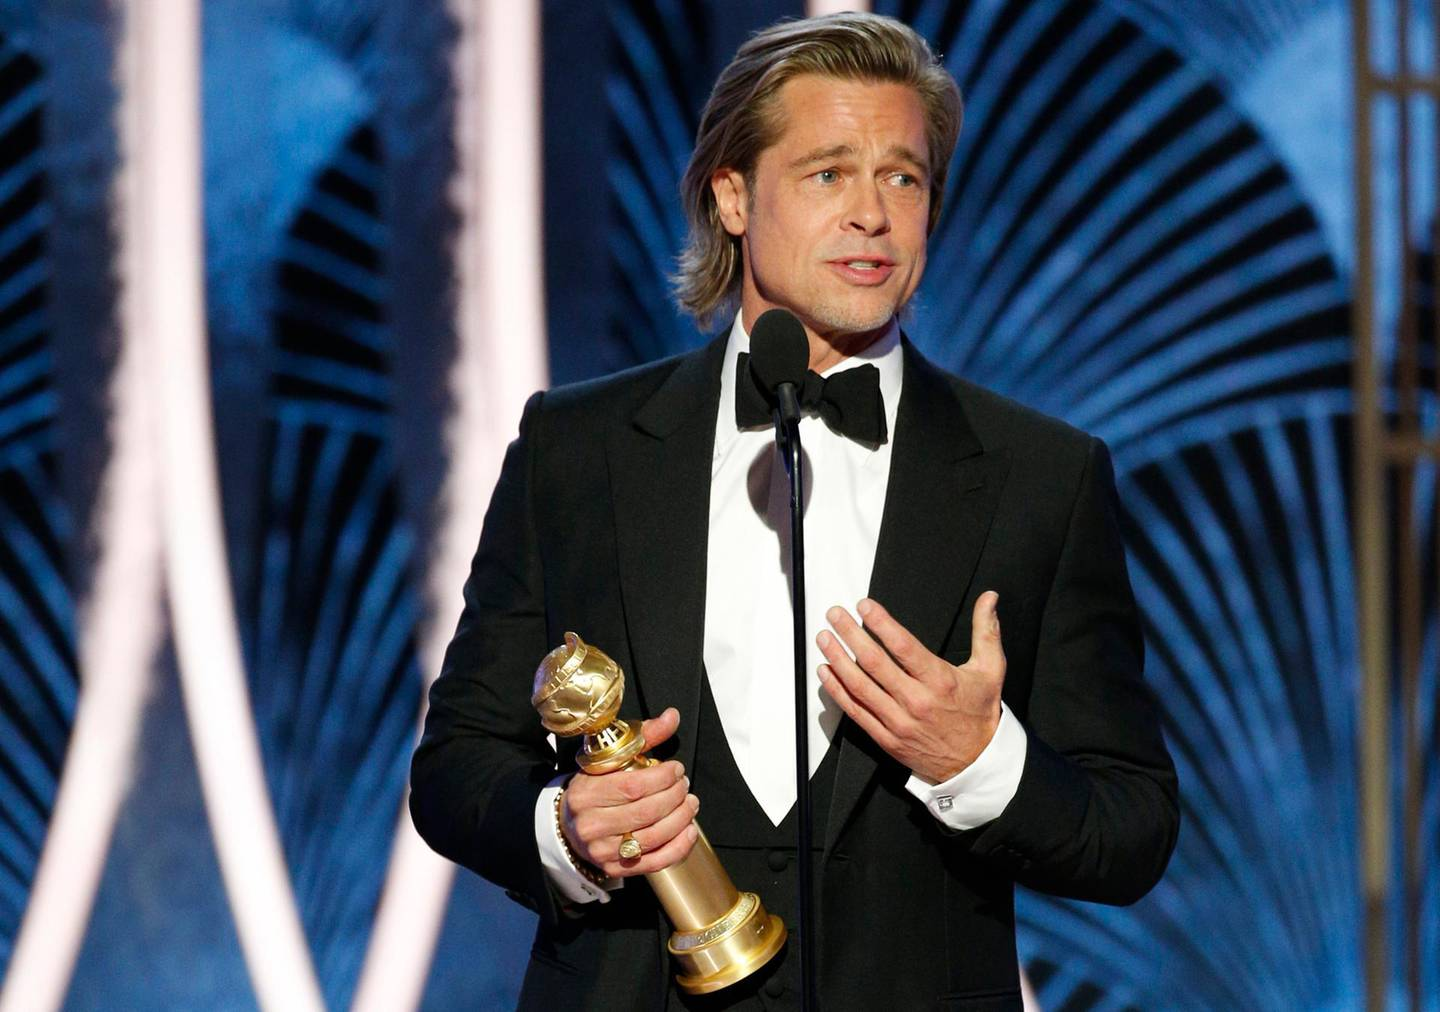 """77th Golden Globe Awards - Show - Beverly Hills, California, U.S., January 5, 2020 - Brad Pitt accepts the award for Best Supporting Actor - Motion Picture for """"Once Upon A Time...In Hollywood.""""    Paul Drinkwater/NBC Universal/Handout via REUTERS For editorial use only. Additional clearance required for commercial or promotional use, contact your local office for assistance. Any commercial or promotional use of NBCUniversal content requires NBCUniversal's prior written consent. No book publishing without prior approval. NO SALES. NO ARCHIVES."""